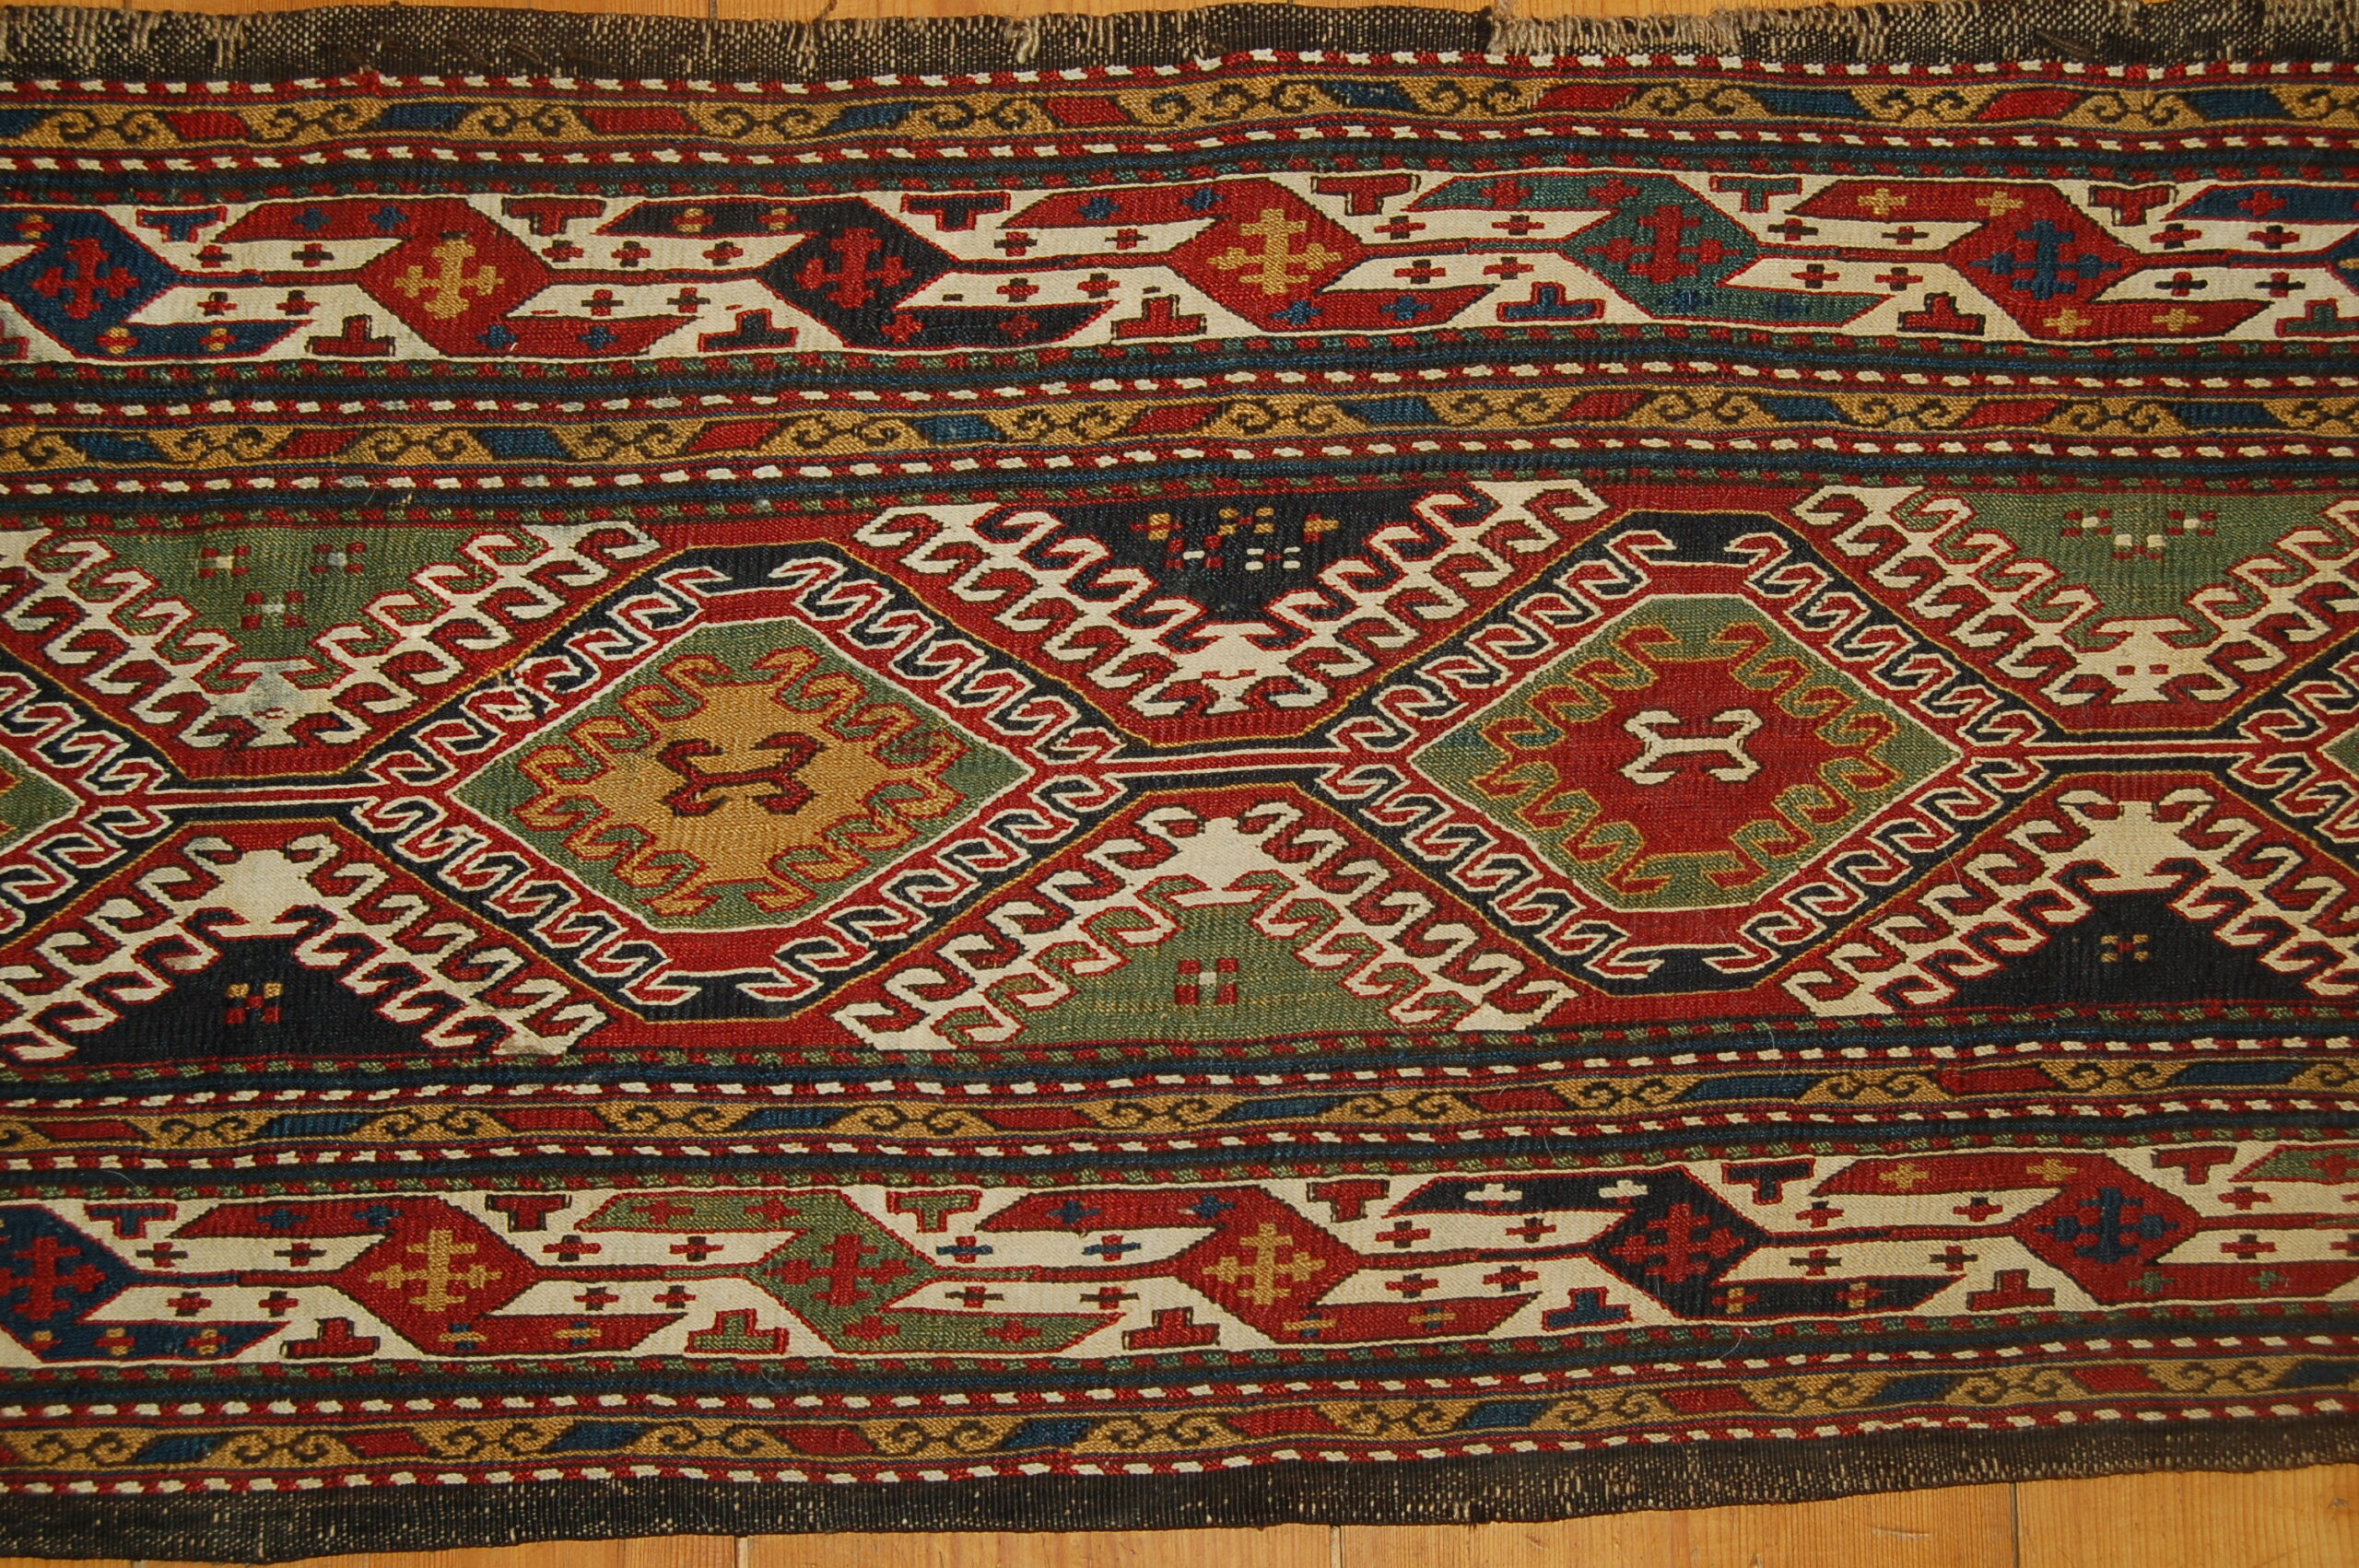 Mafraj (bedding storage sack) panel, sumac technique, Qarabag, mid 19th century